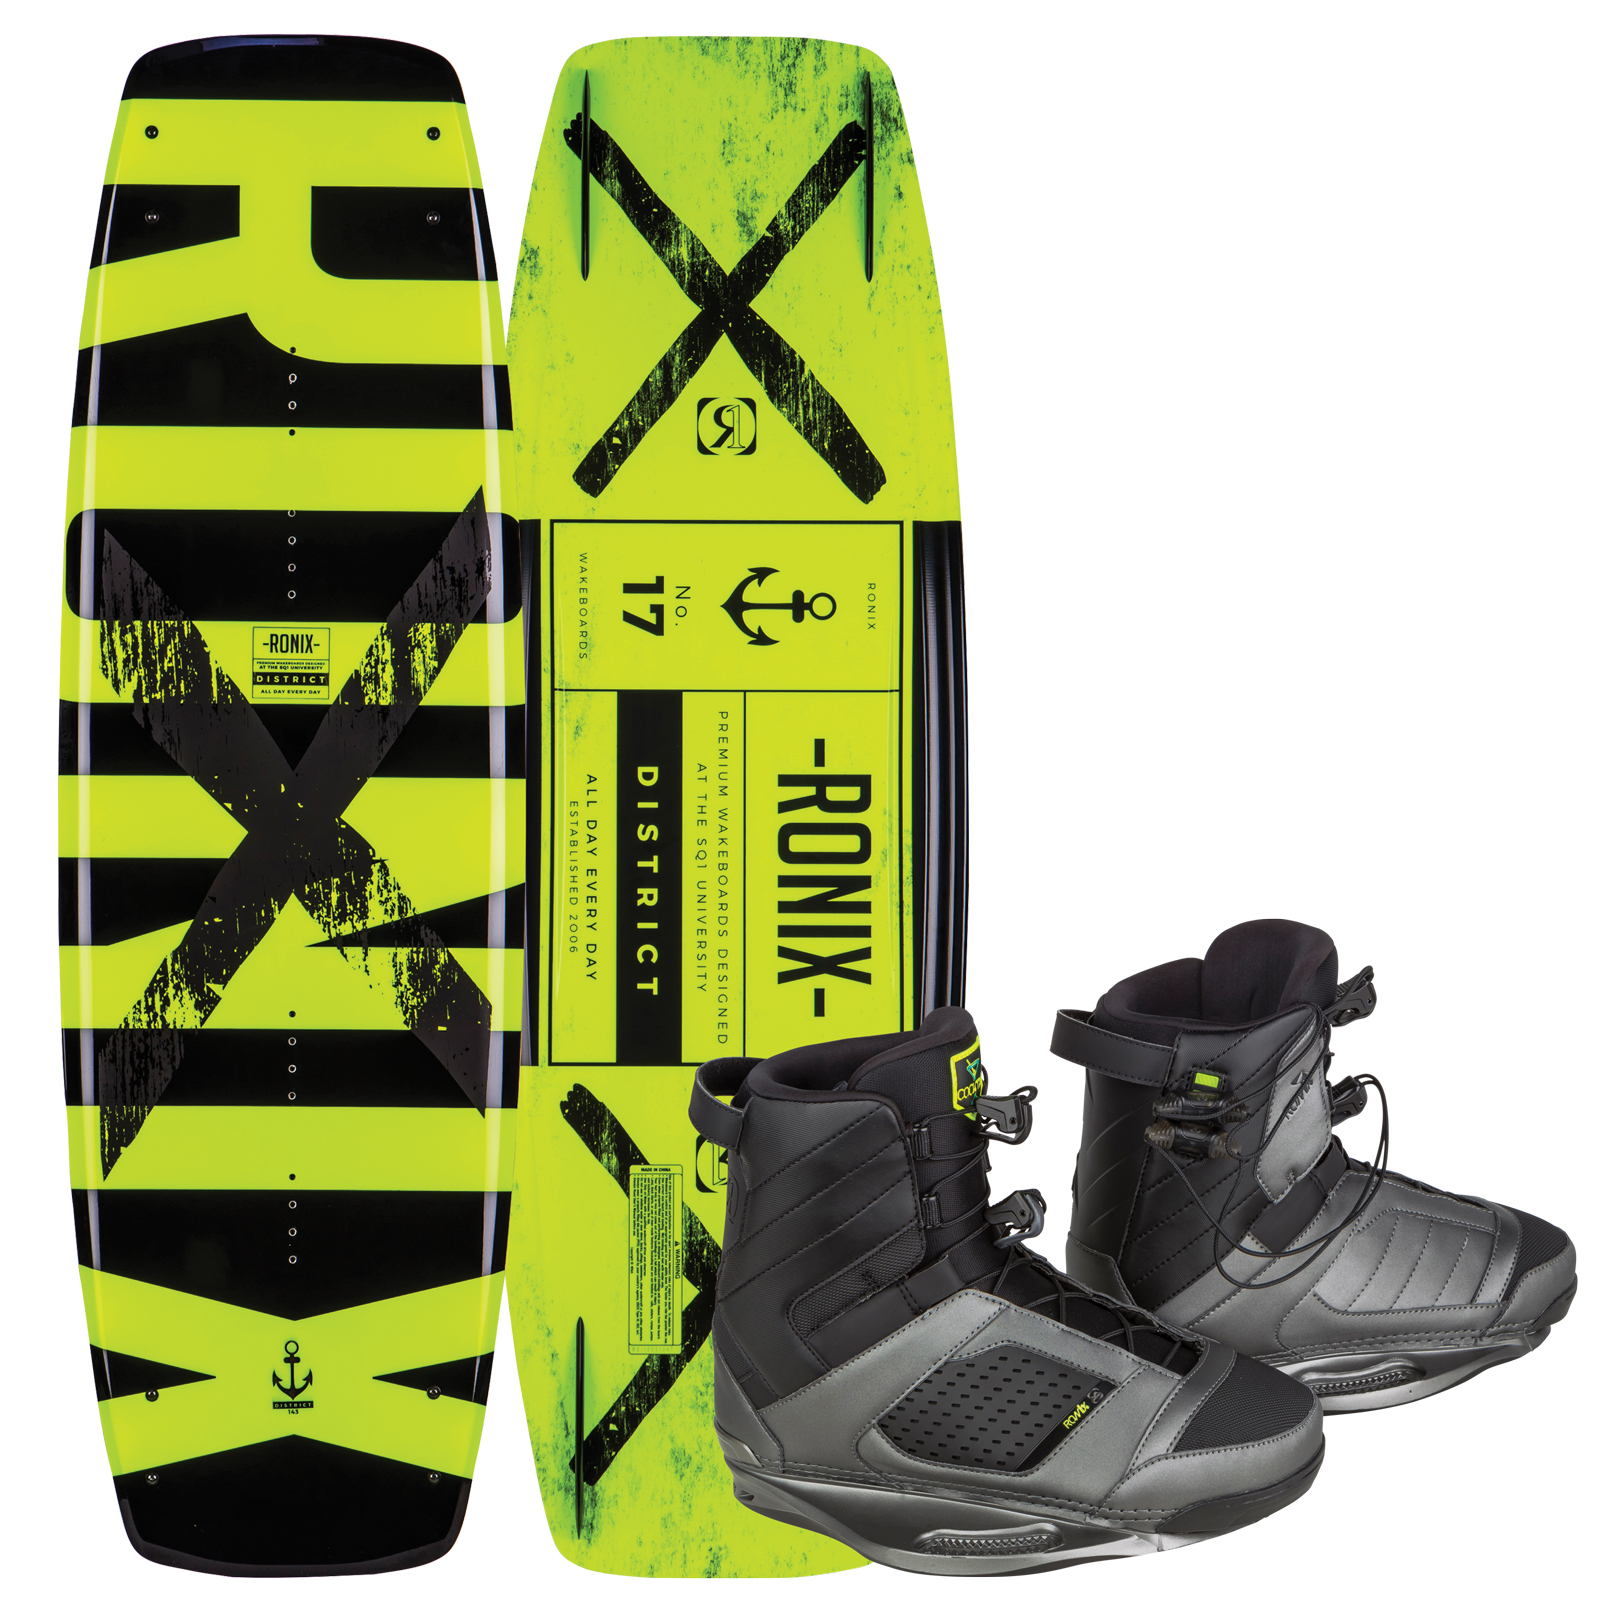 DISTRICT 129W/ COCKTAIL PACKAGE RONIX 2017